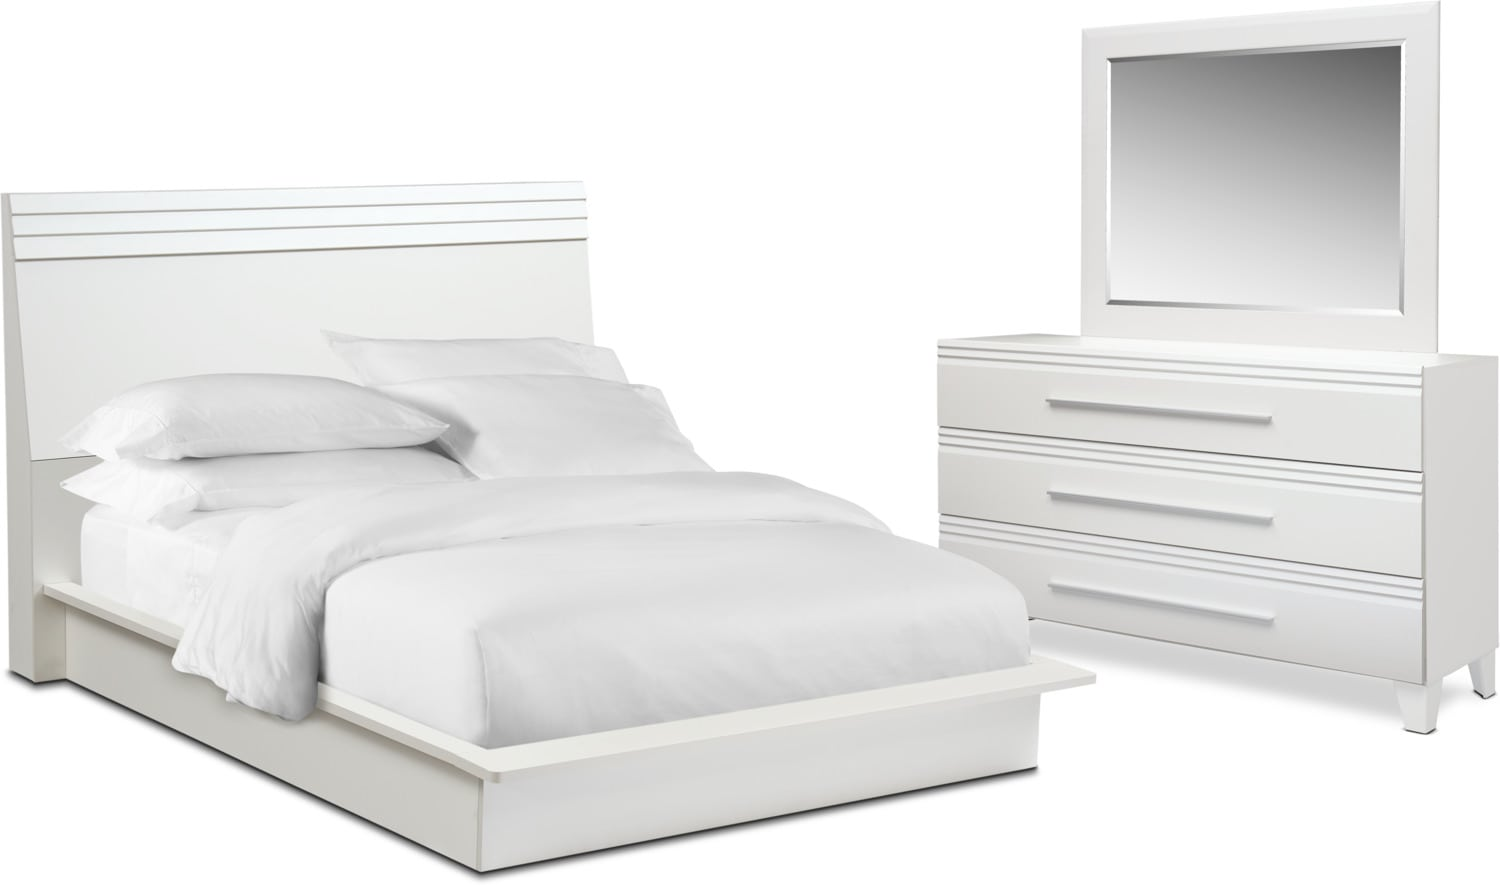 Bedroom Furniture - Allori 5-Piece Bedroom Set with Dresser and Mirror